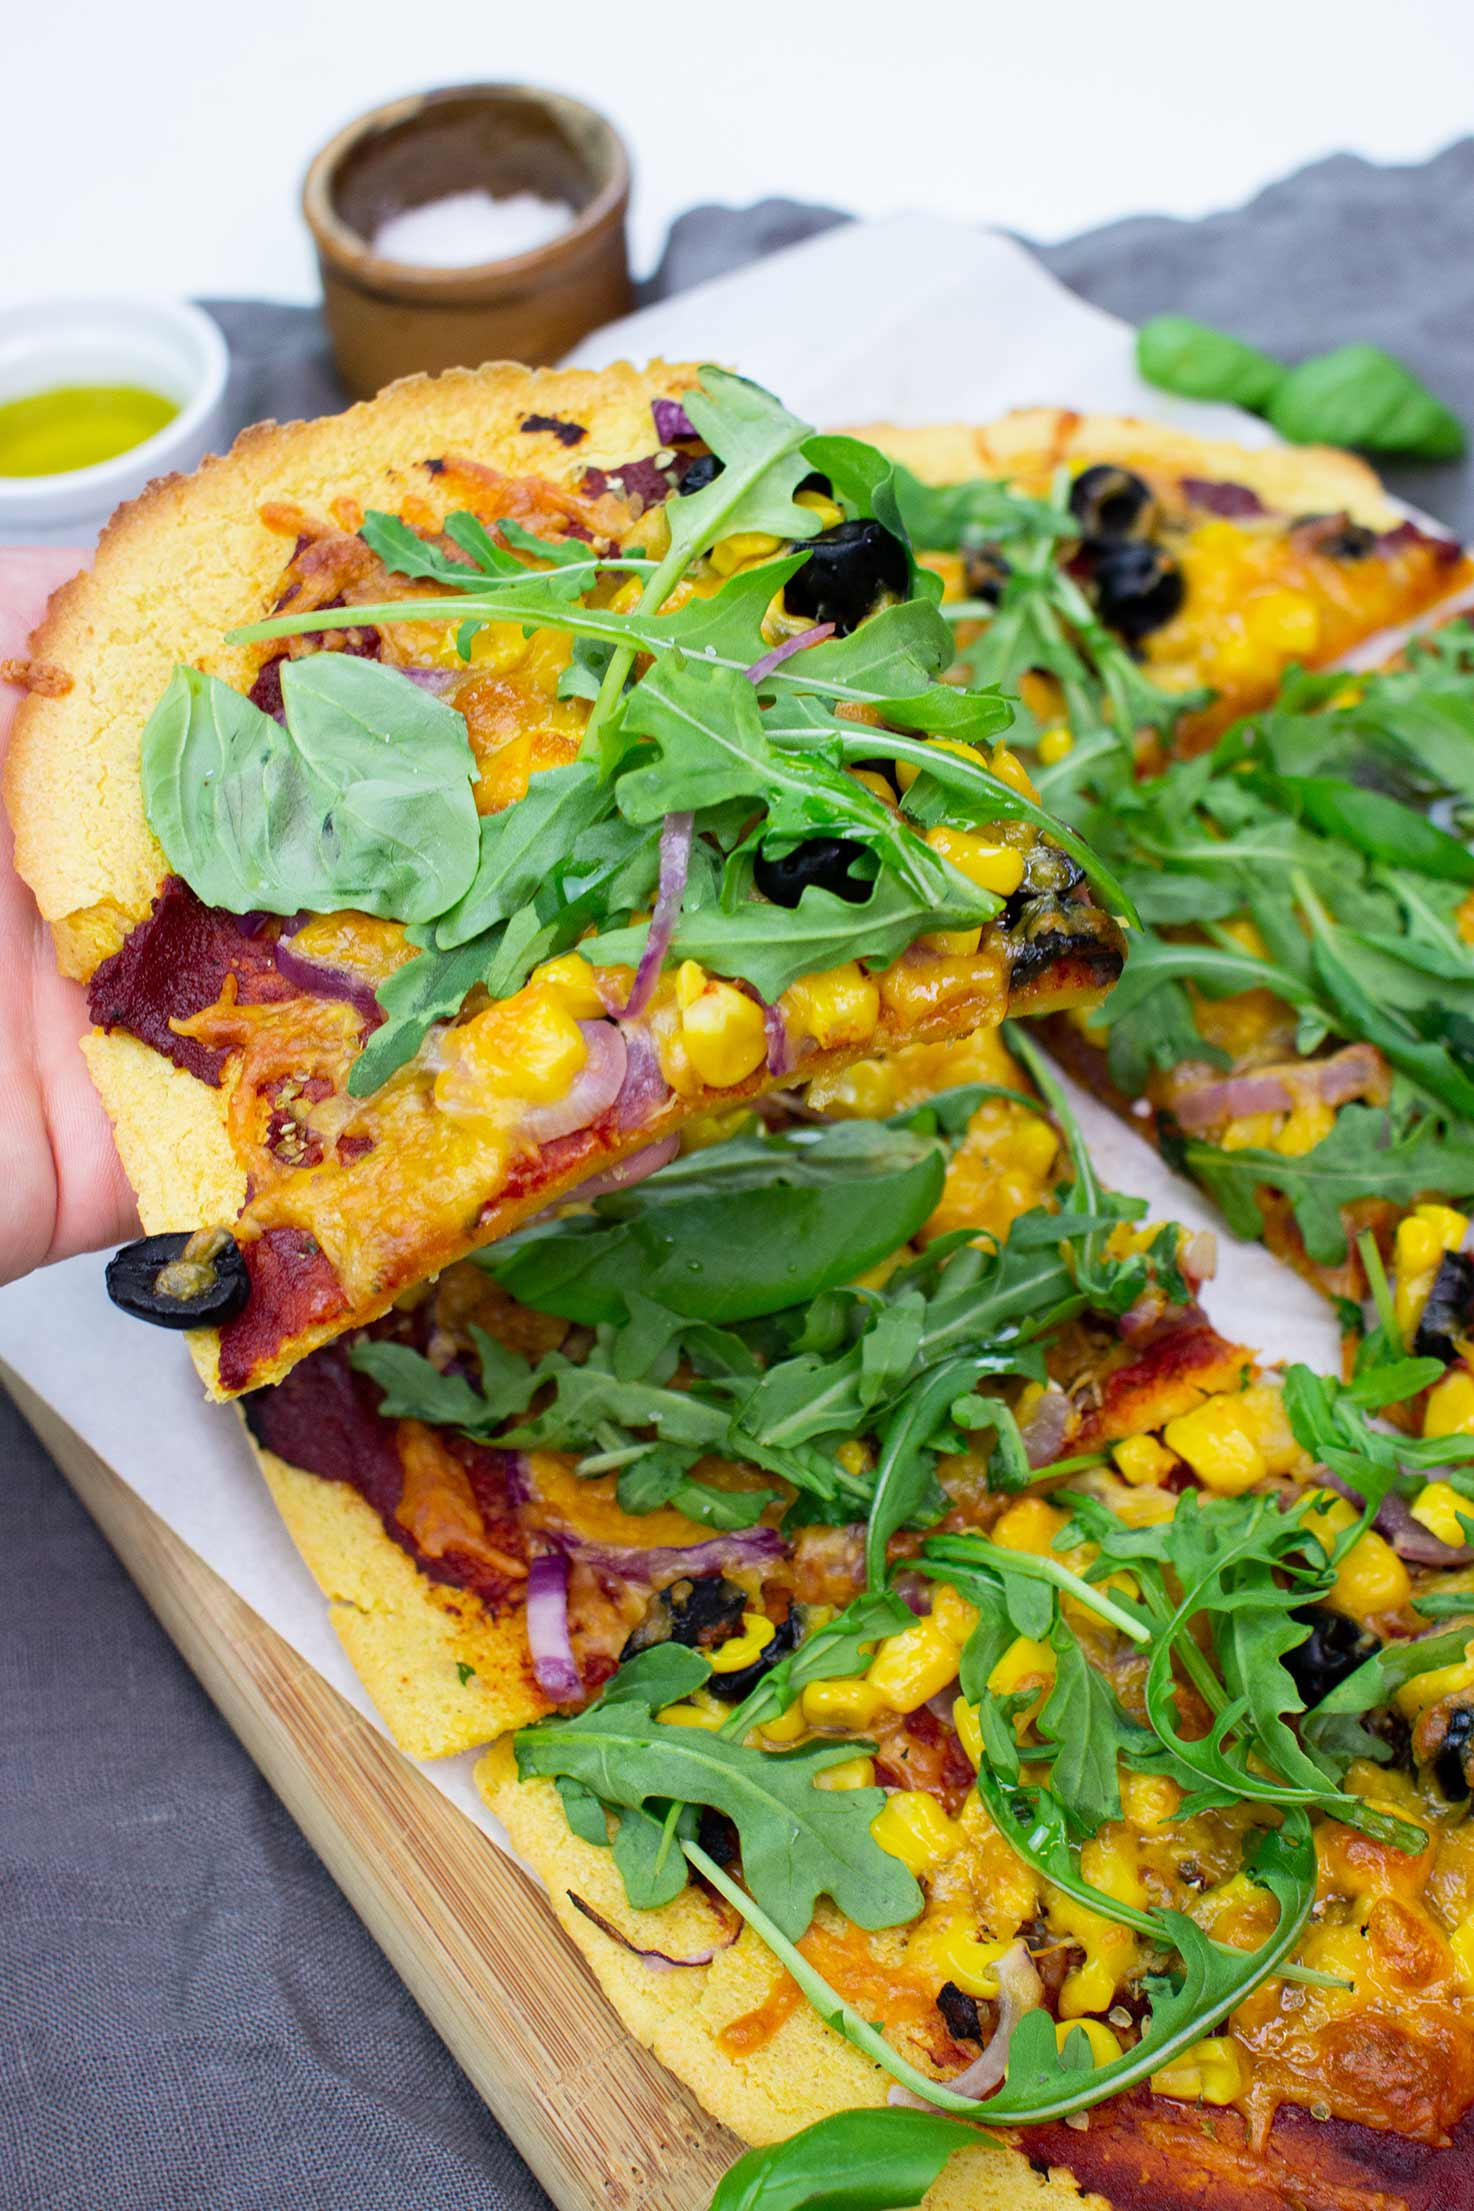 The pizza is on the paper on a chopping board on a towel with olive oil and salt, and Dave is holding a piece of pizza #baking powder #oil | hurrythefoodup.com